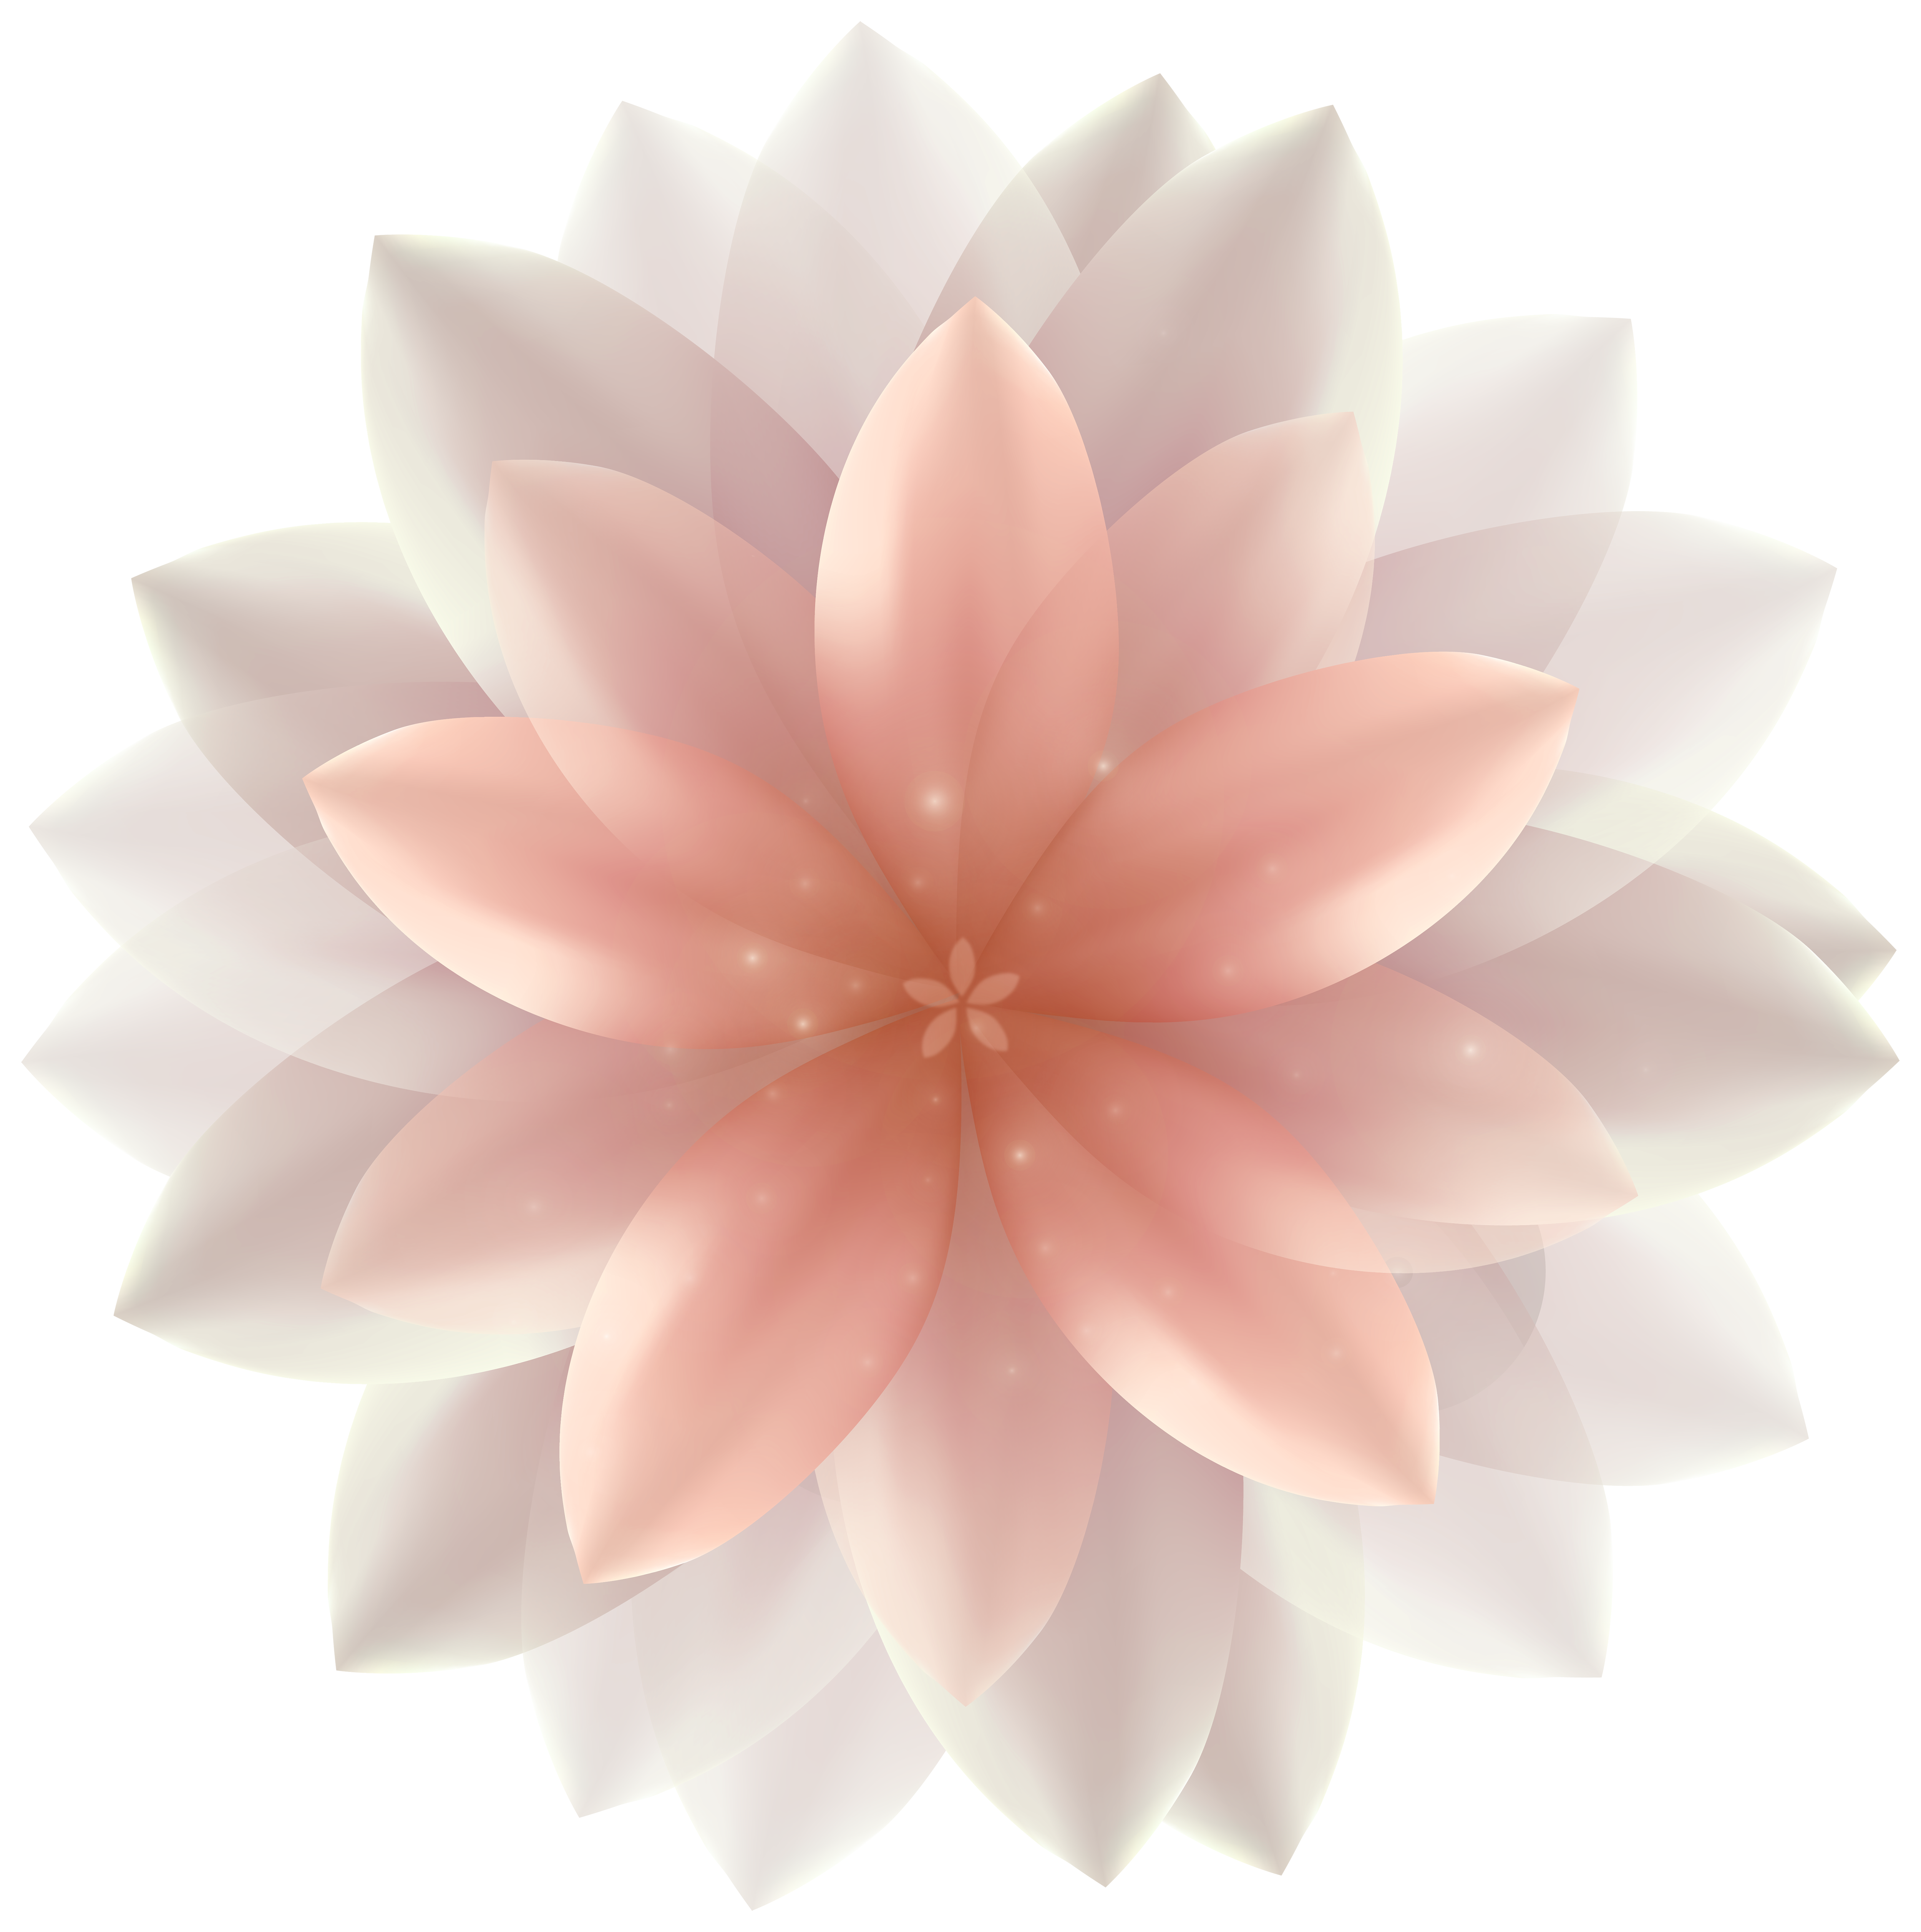 Free clipart pink rose hair peice w no background clip black and white download Pink flowers Dahlia Clip art - Transparent Flower Cliparts png ... clip black and white download